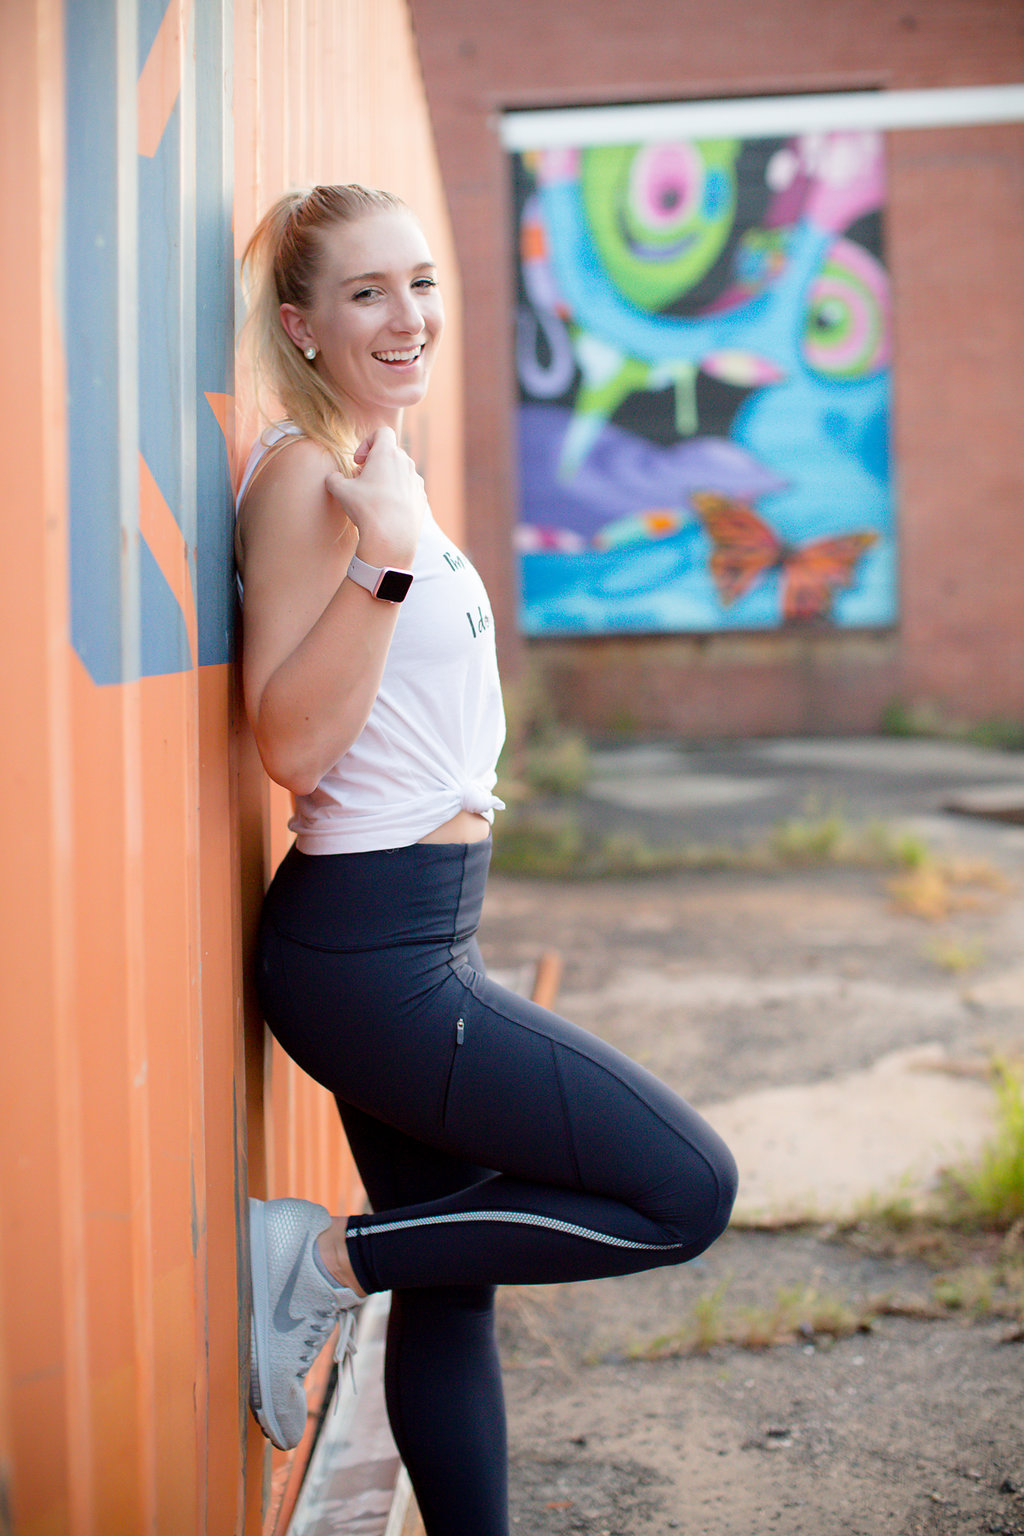 5 Essentials Chic for Working Out best photo